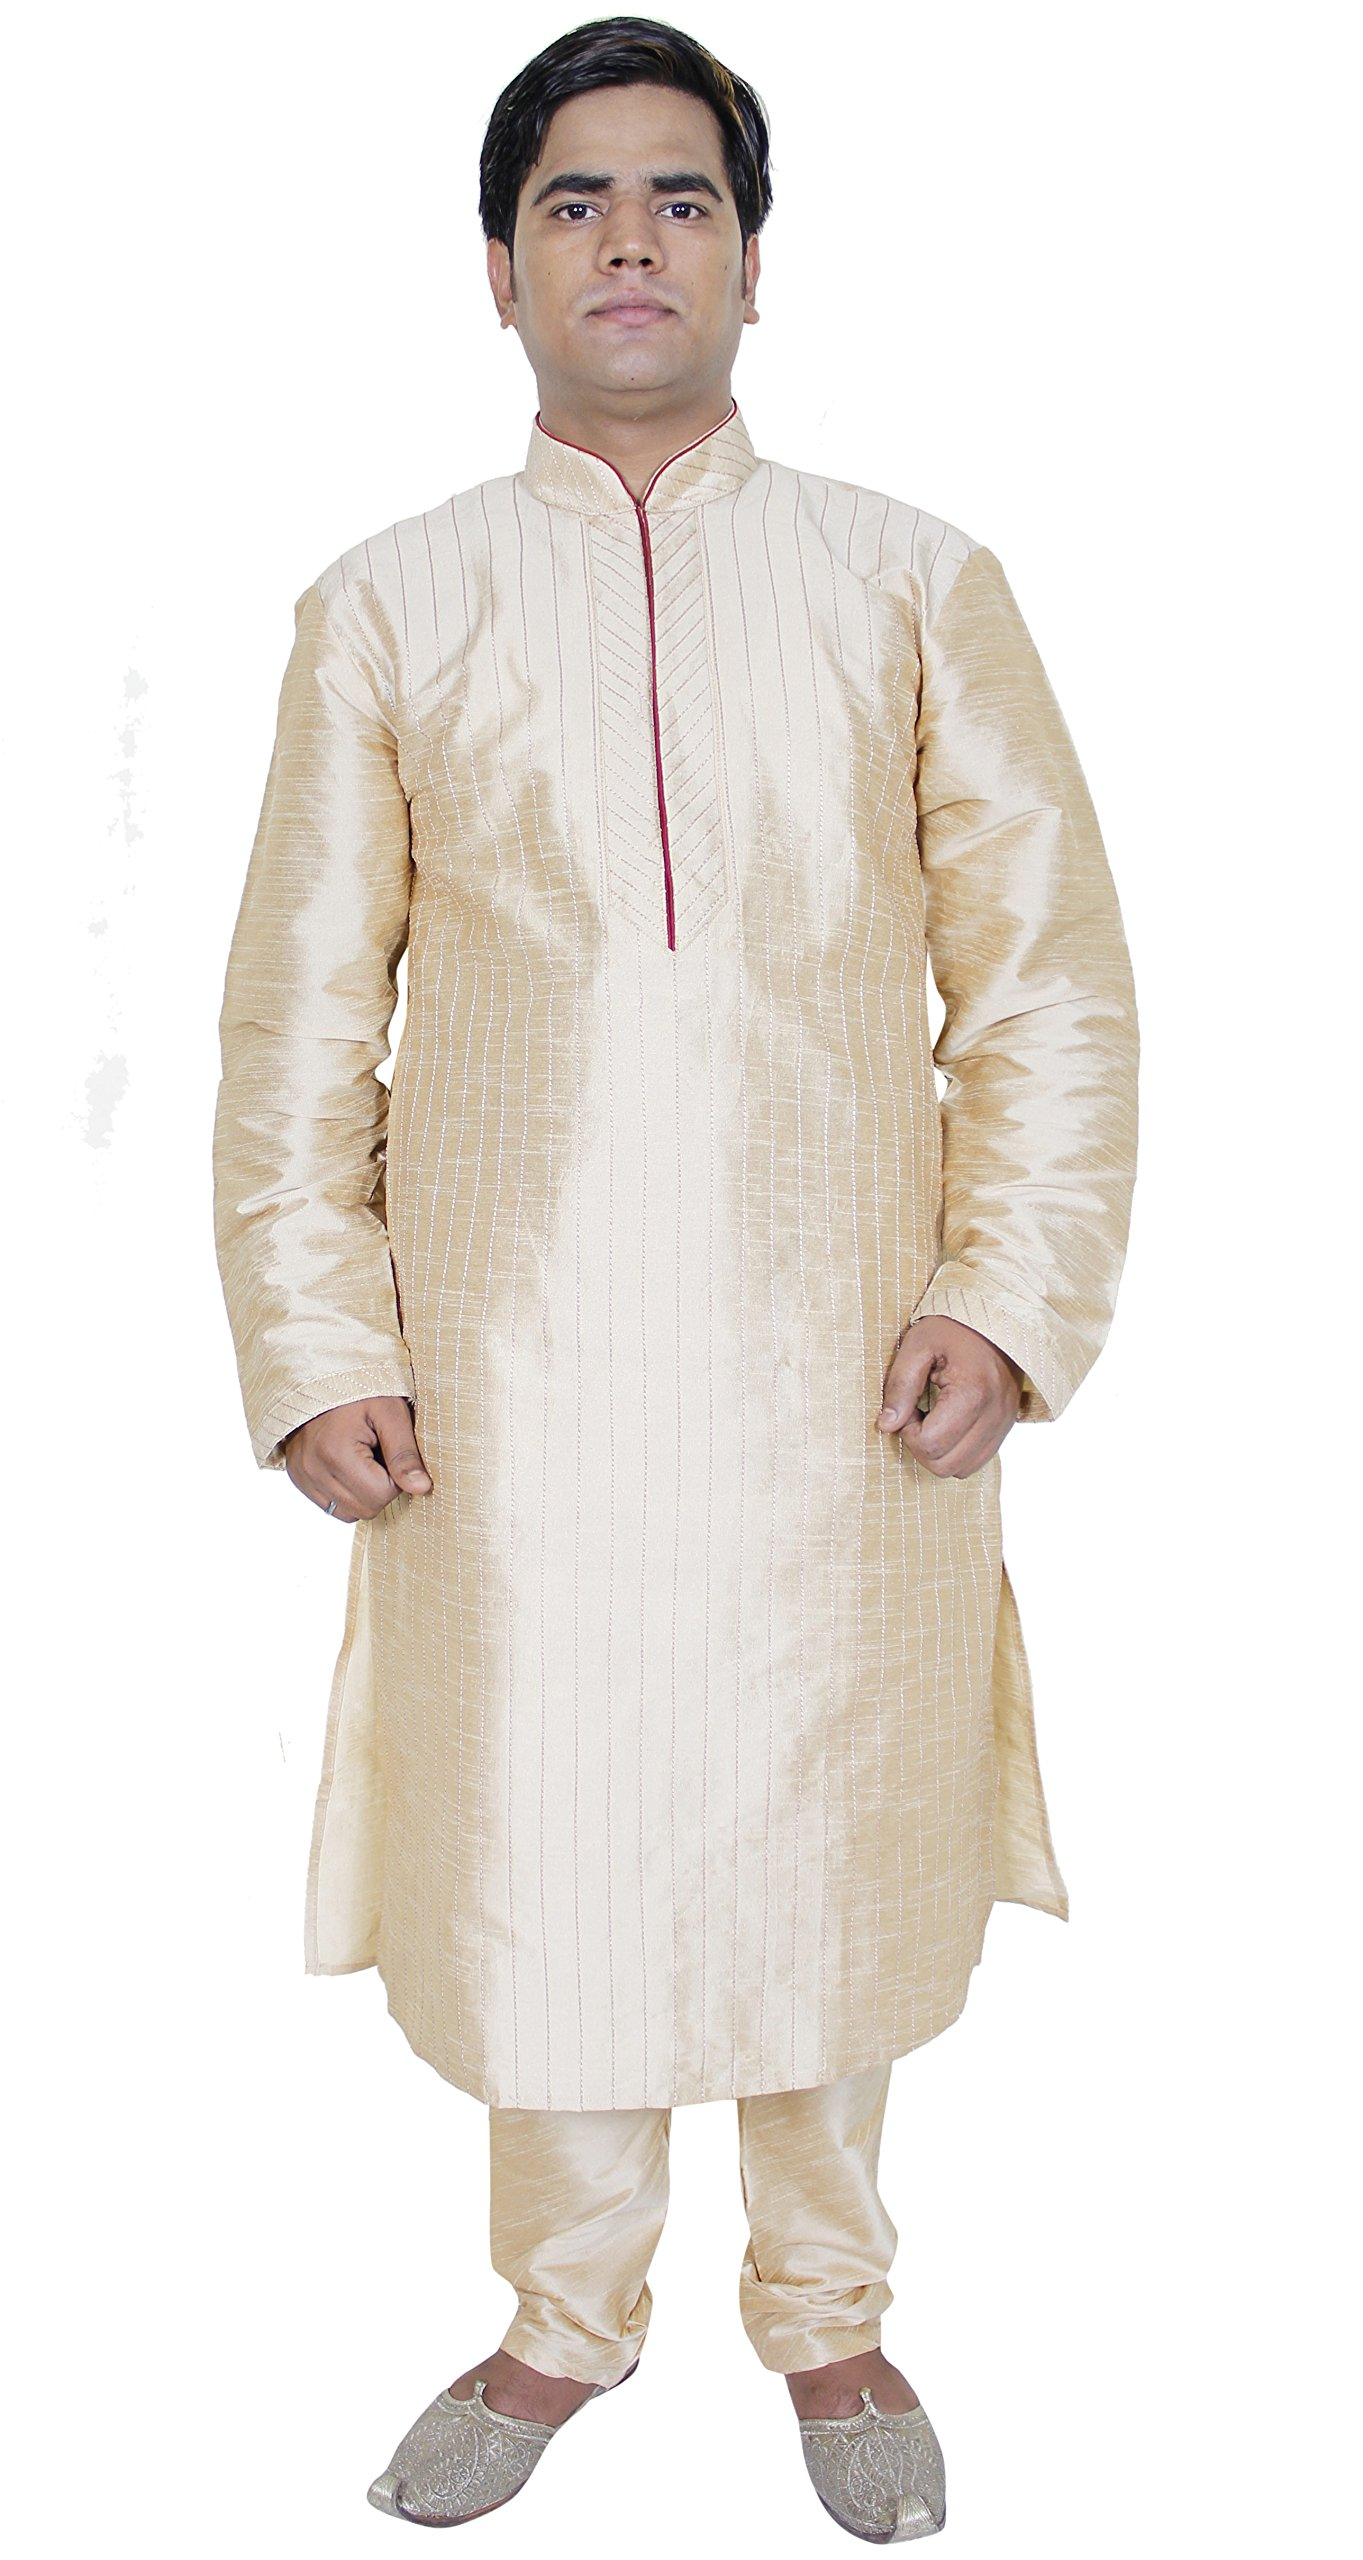 Indian Kurta Pajama Men Long Sleeve Shirt Pyjama Set Ethnic Wear Wedding Outfit -M